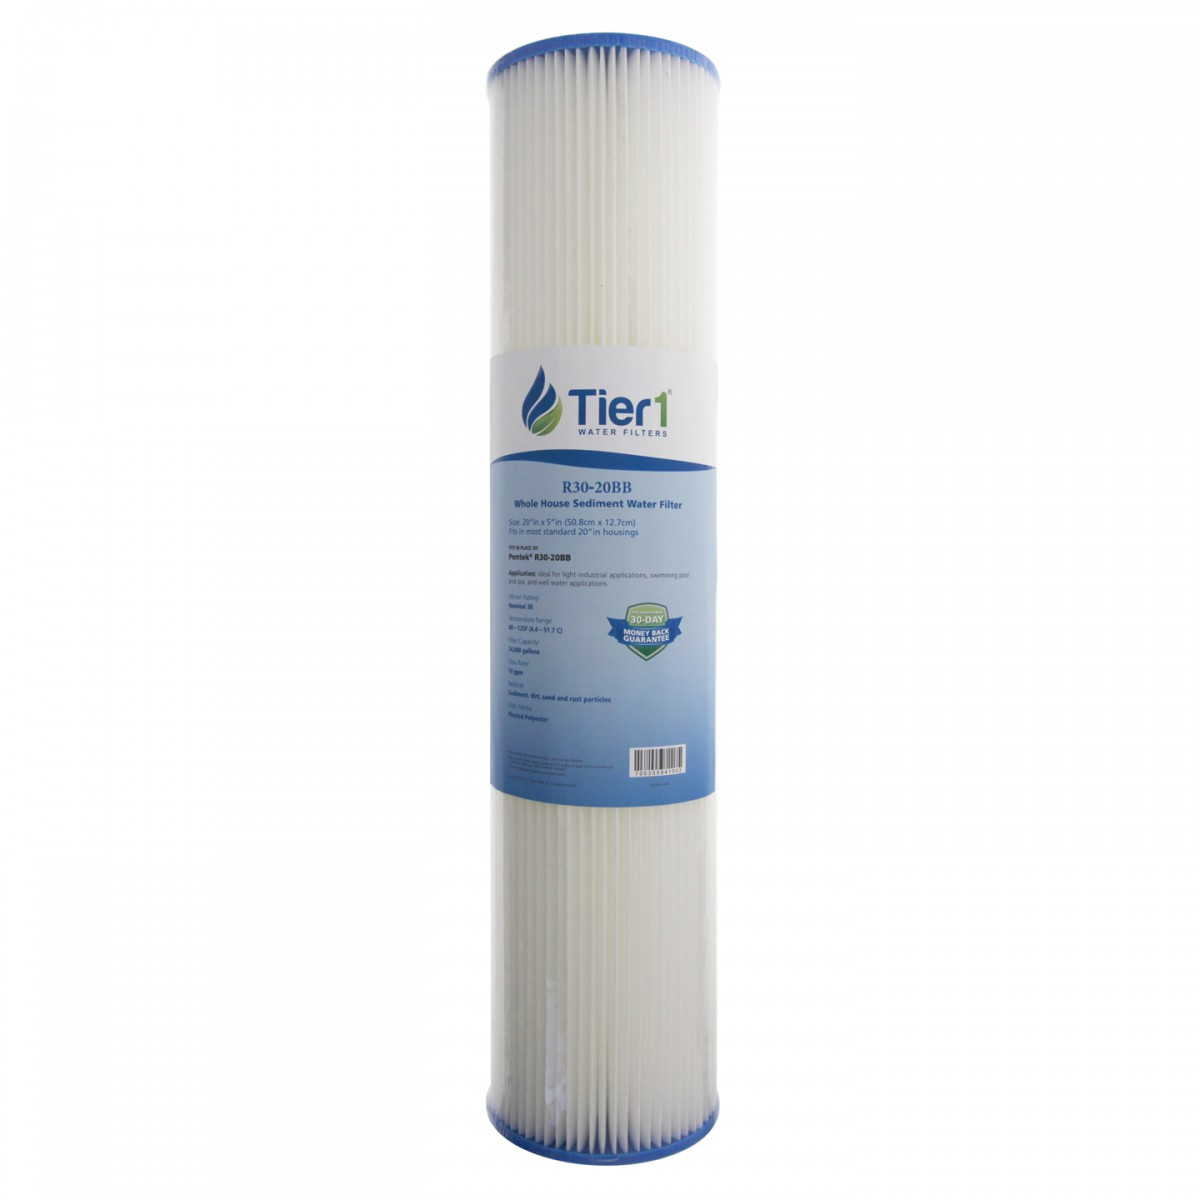 R30 20BB Pentek Comparable Whole House Sediment Water Filter by Tier1